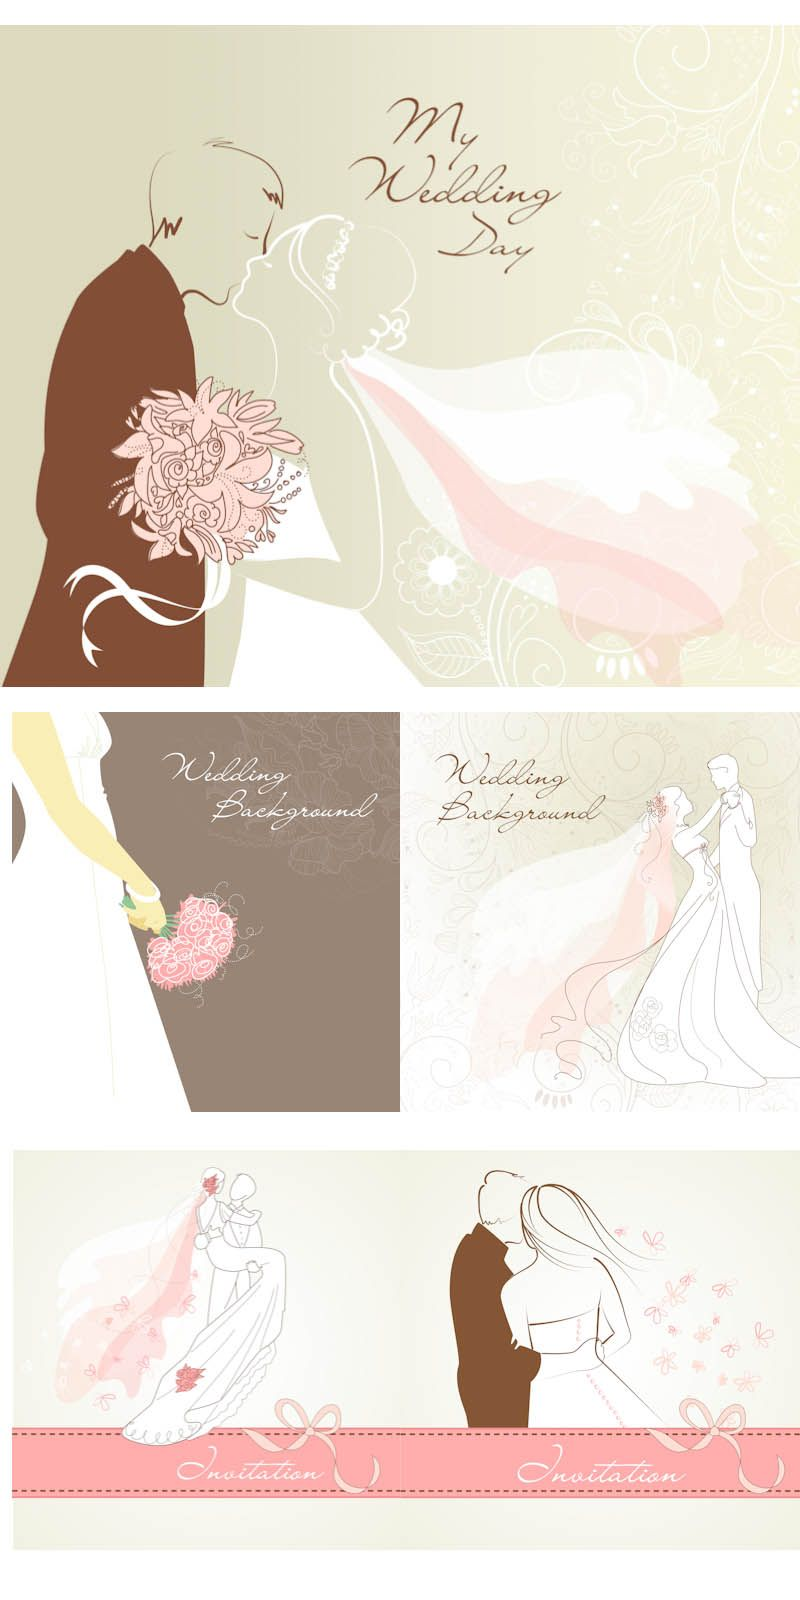 Pin By حبيب الروح On Freebies Vectors Wedding Invitations Wedding Background